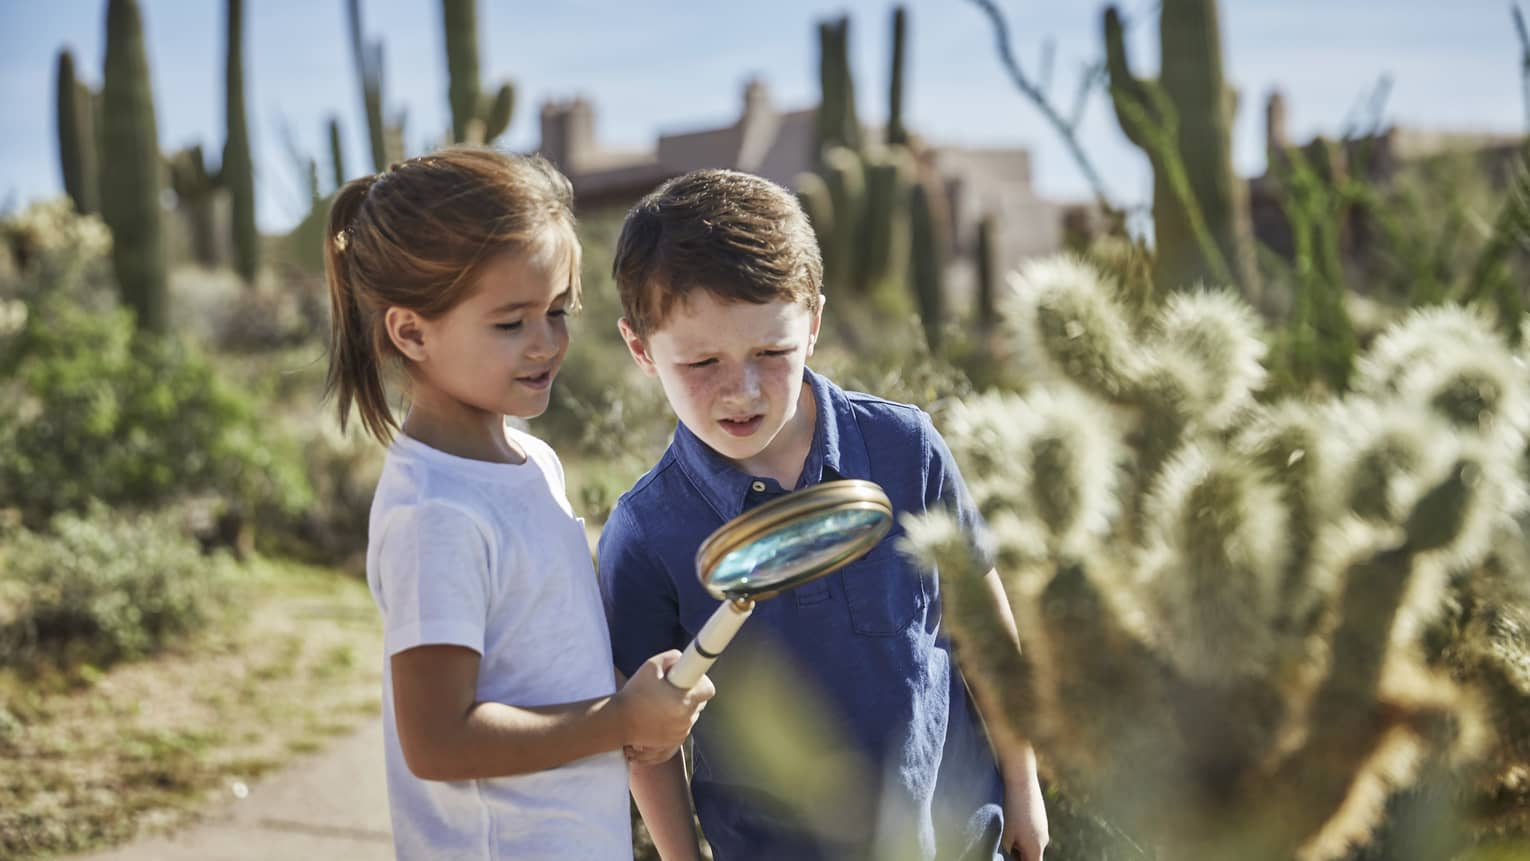 A little boy and girl investigate a cacti's arm with a magnifying glass